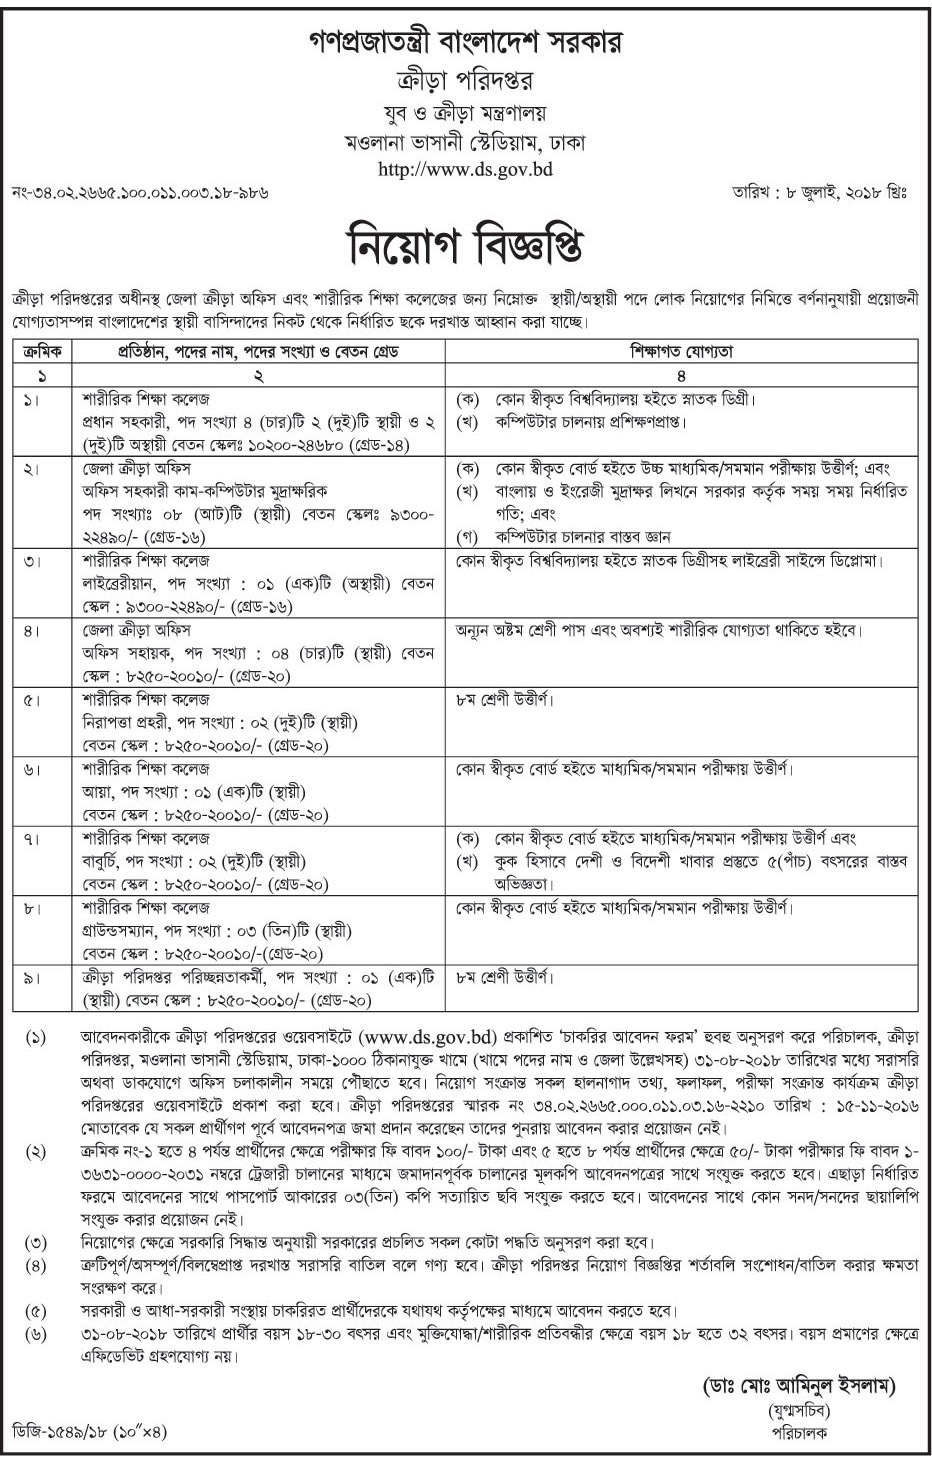 Ministry of Youth & Sports Job Circular 2018